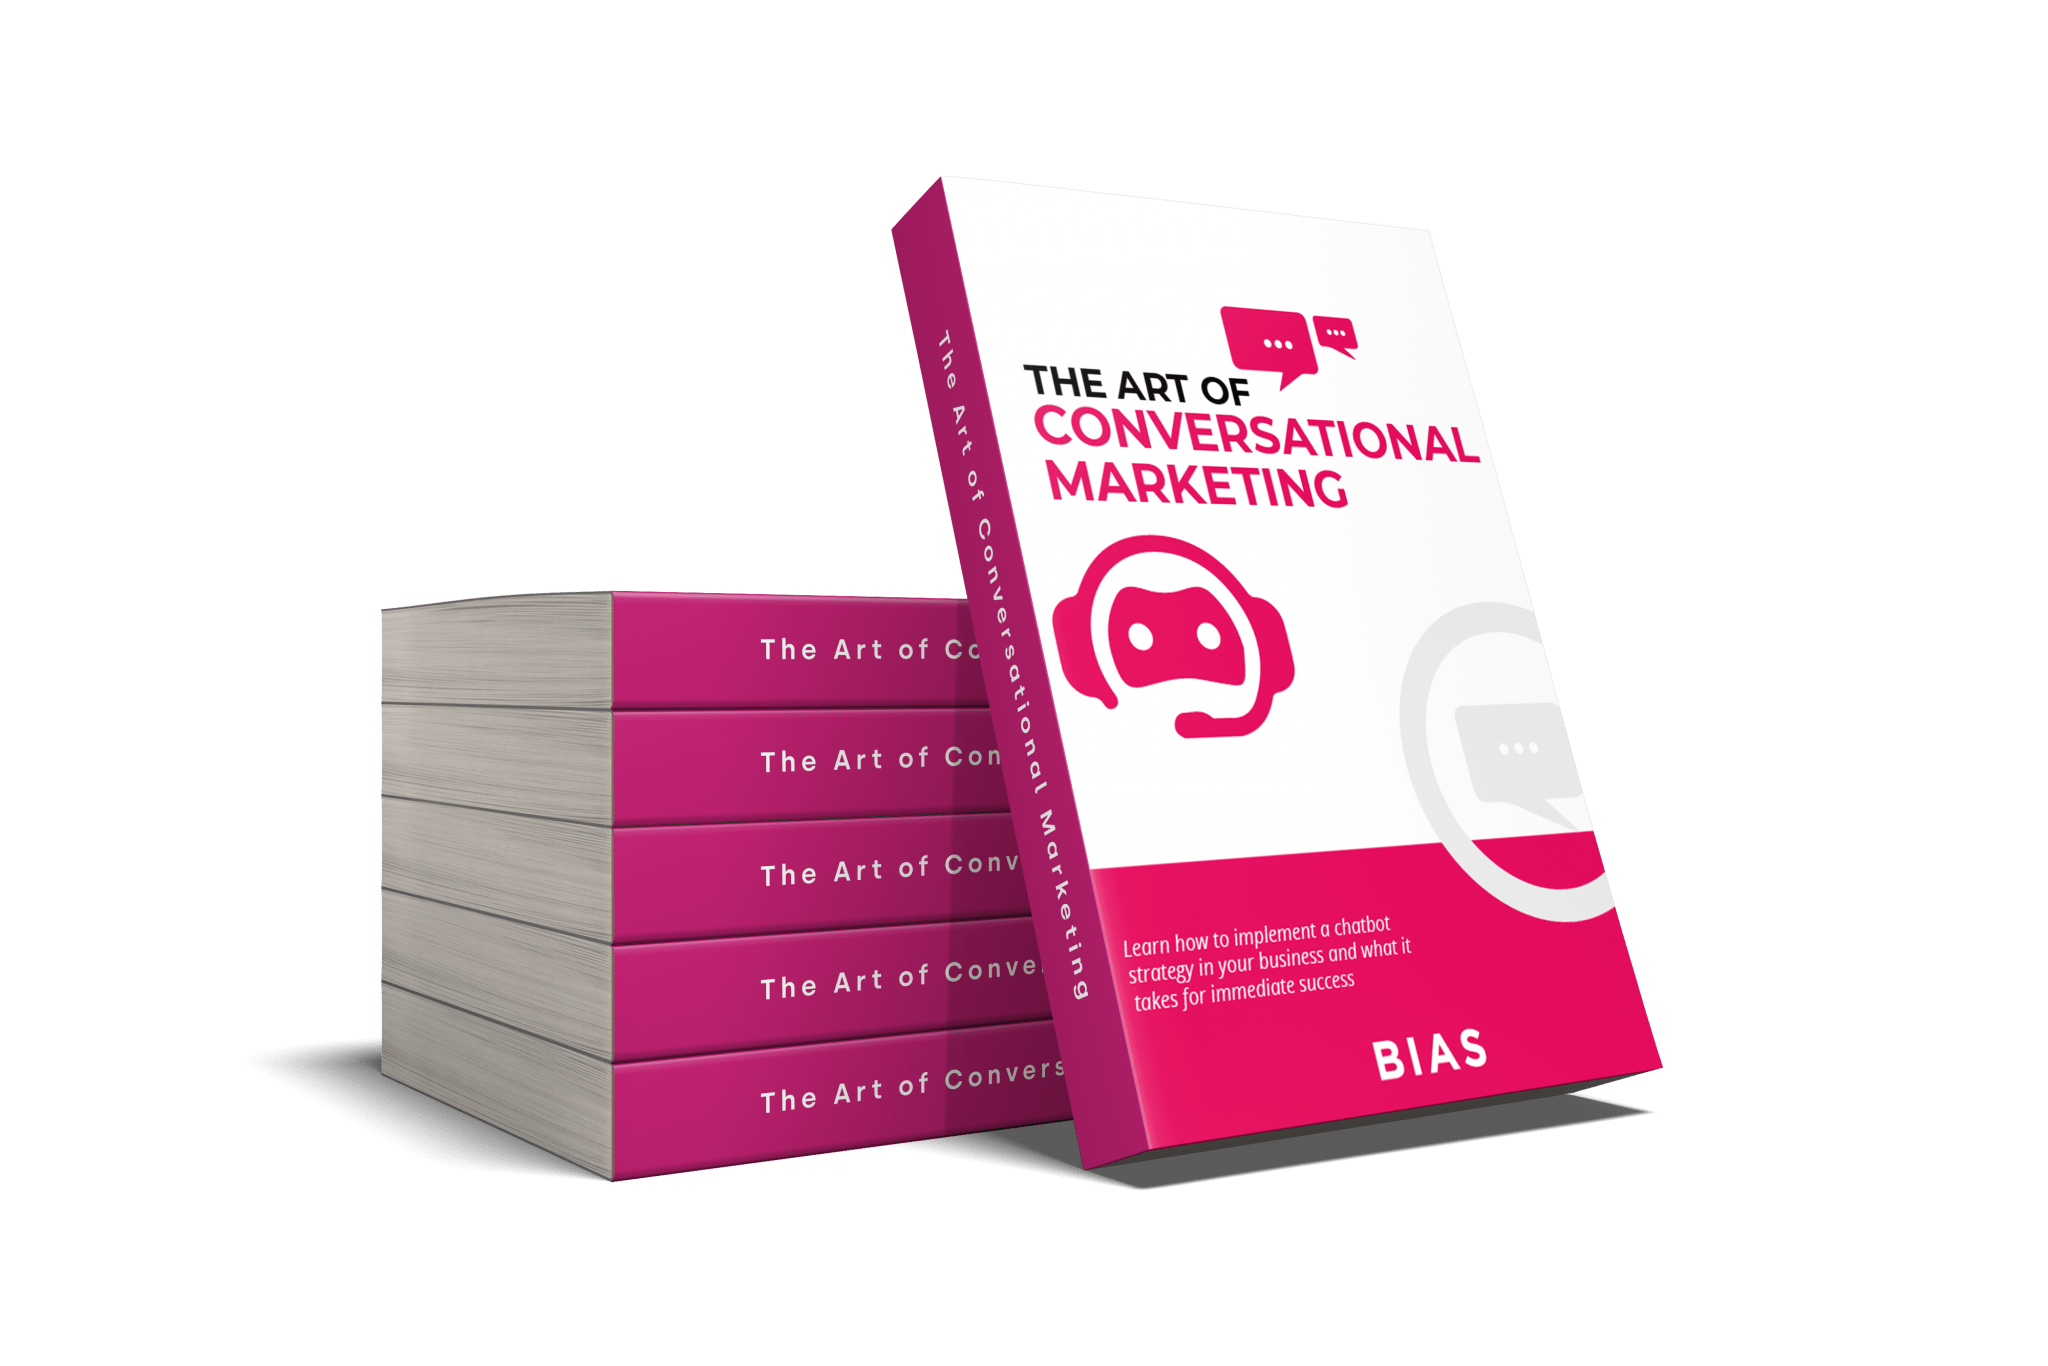 The art of conversational marketing book